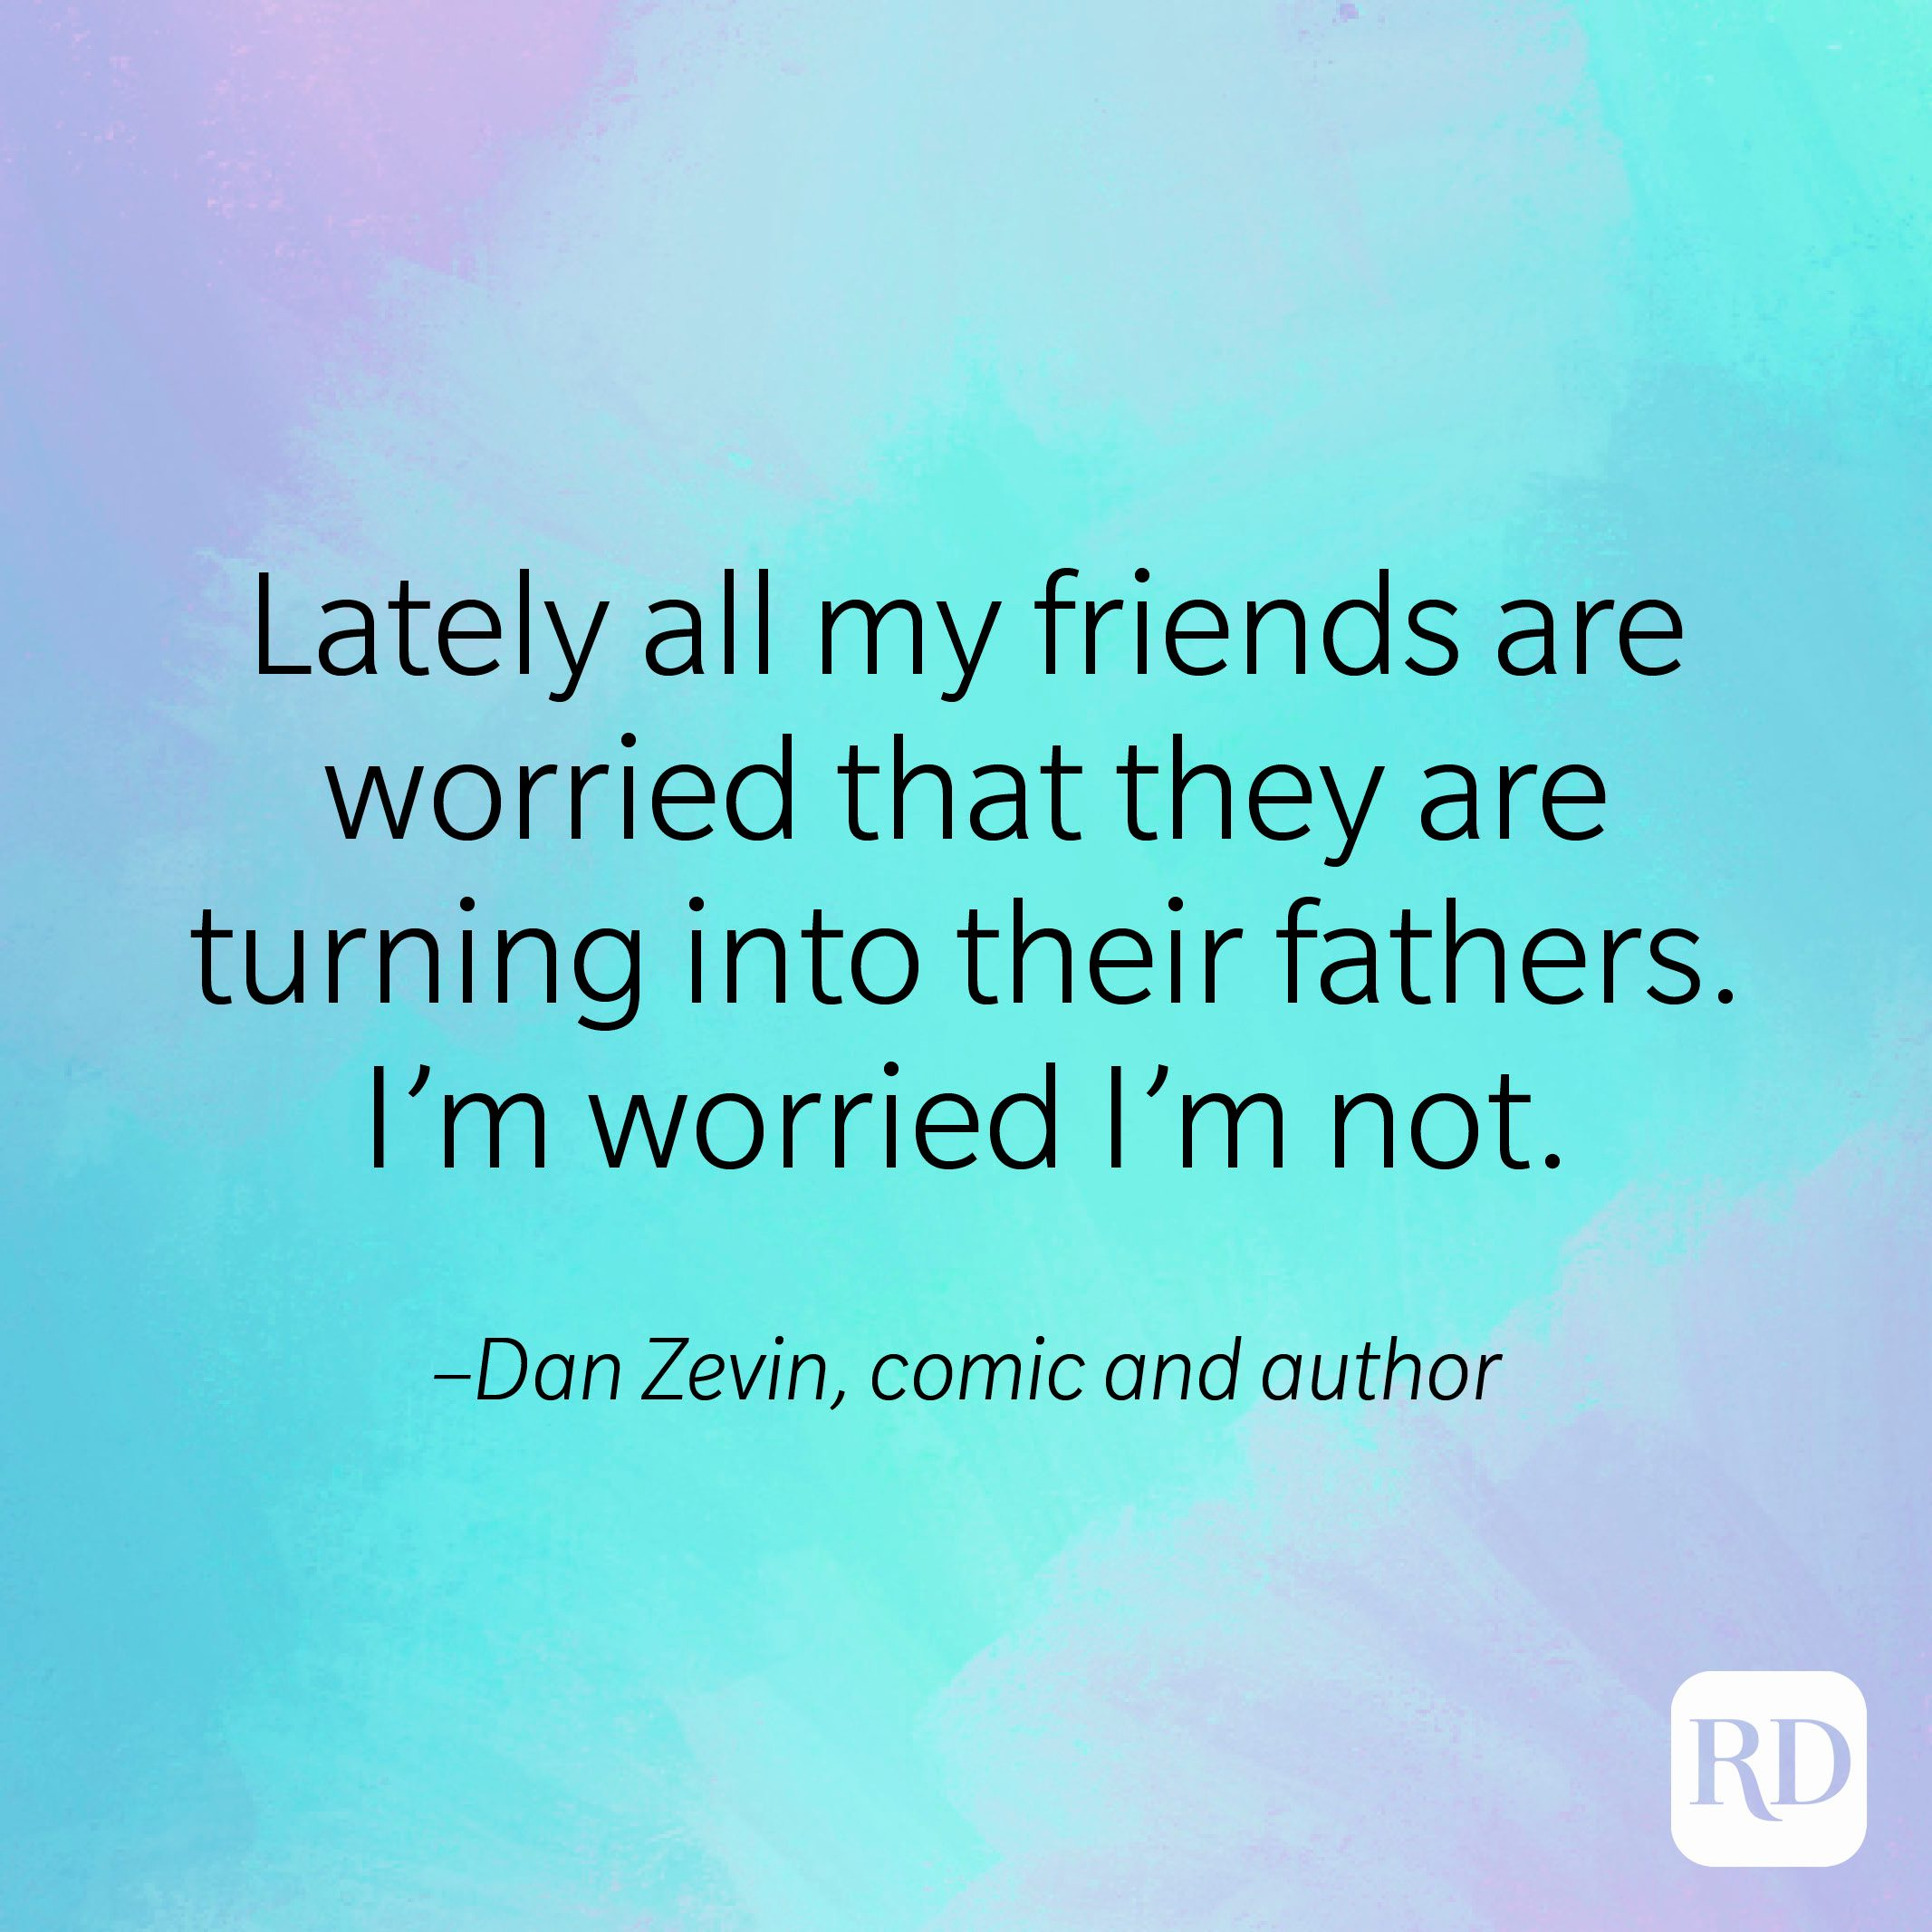 """""""Lately all my friends are worried that they are turning into their fathers. I'm worried I'm not."""" –Dan Zevin, comic and author"""